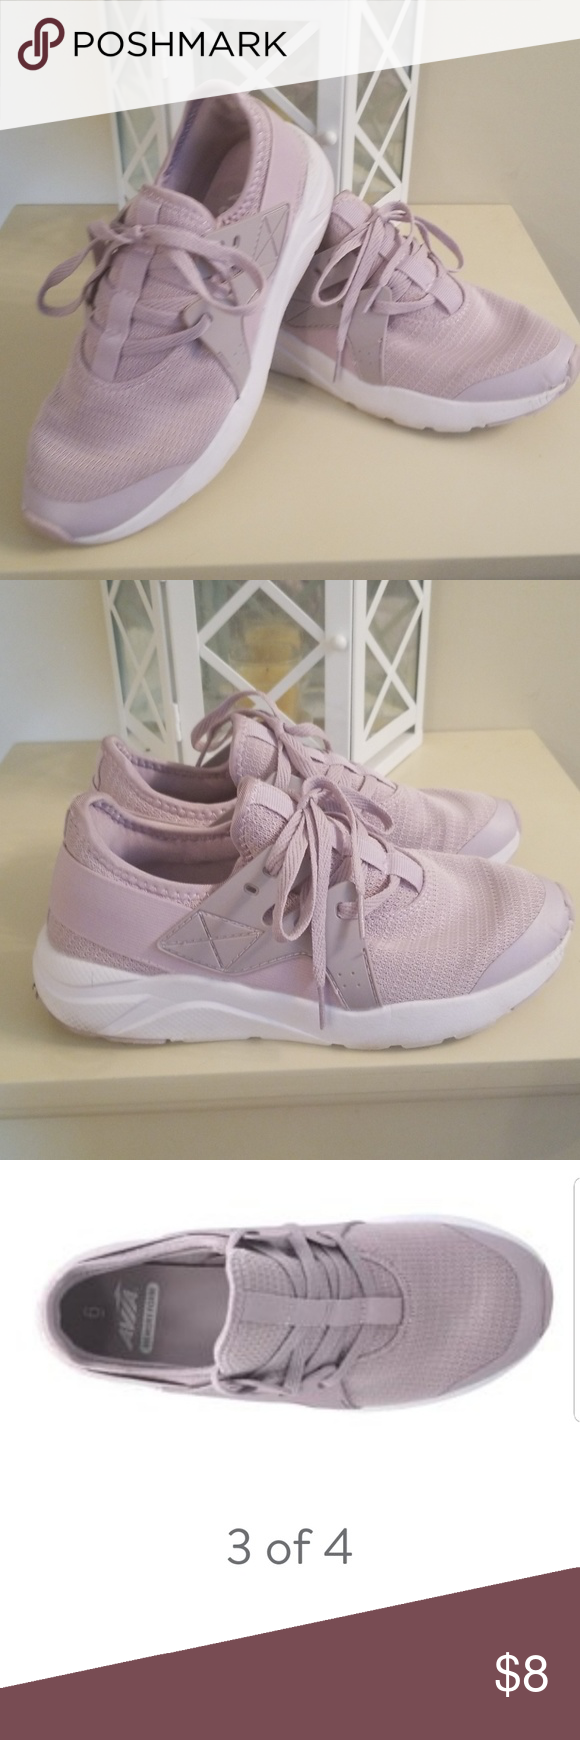 023ae40f5888 AVIA Women s Caged Mesh Athletic Shoe LAVENDER Memory Foam Athletic Shoe  Made by AVIA. Lavender in color. Great Condition. Bought for work but color  is not ...